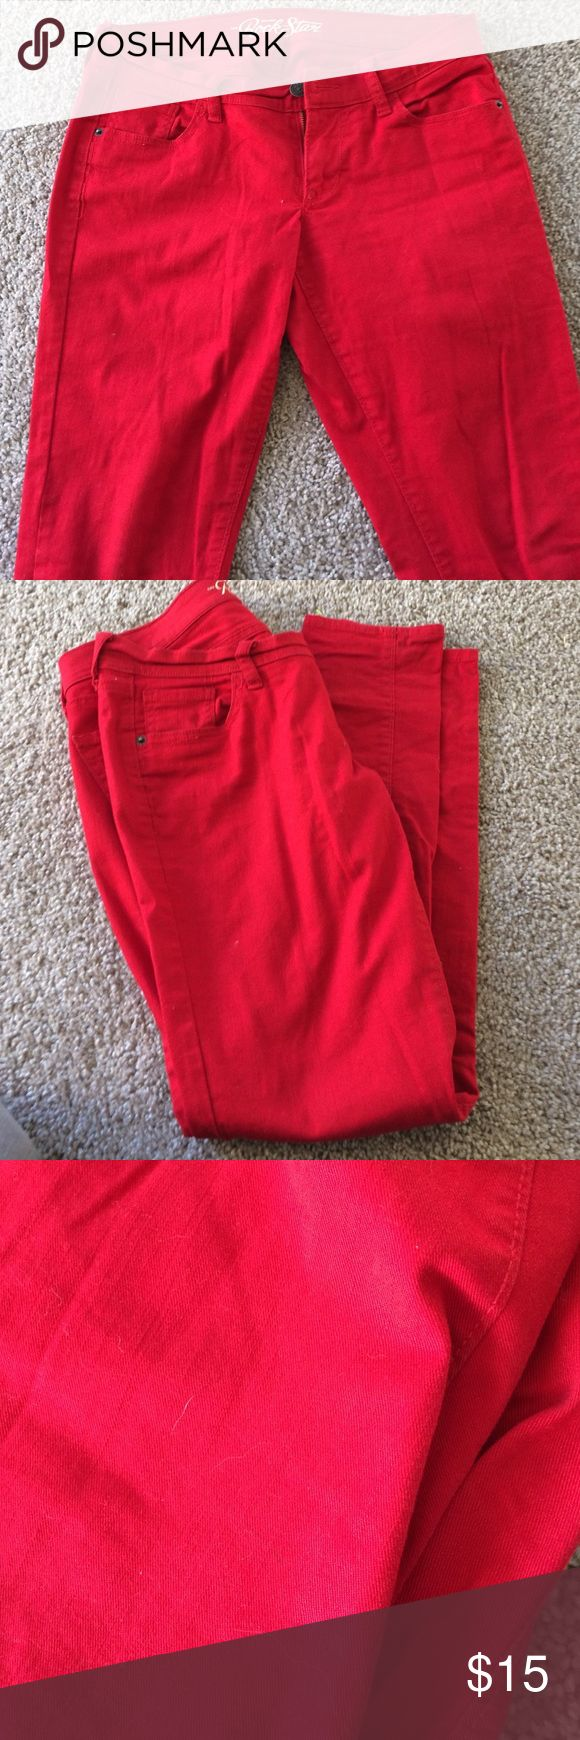 Red Rockstar Jeans Like new condition except for two small pen marks on front. They may come out in the wash Old Navy Jeans Straight Leg